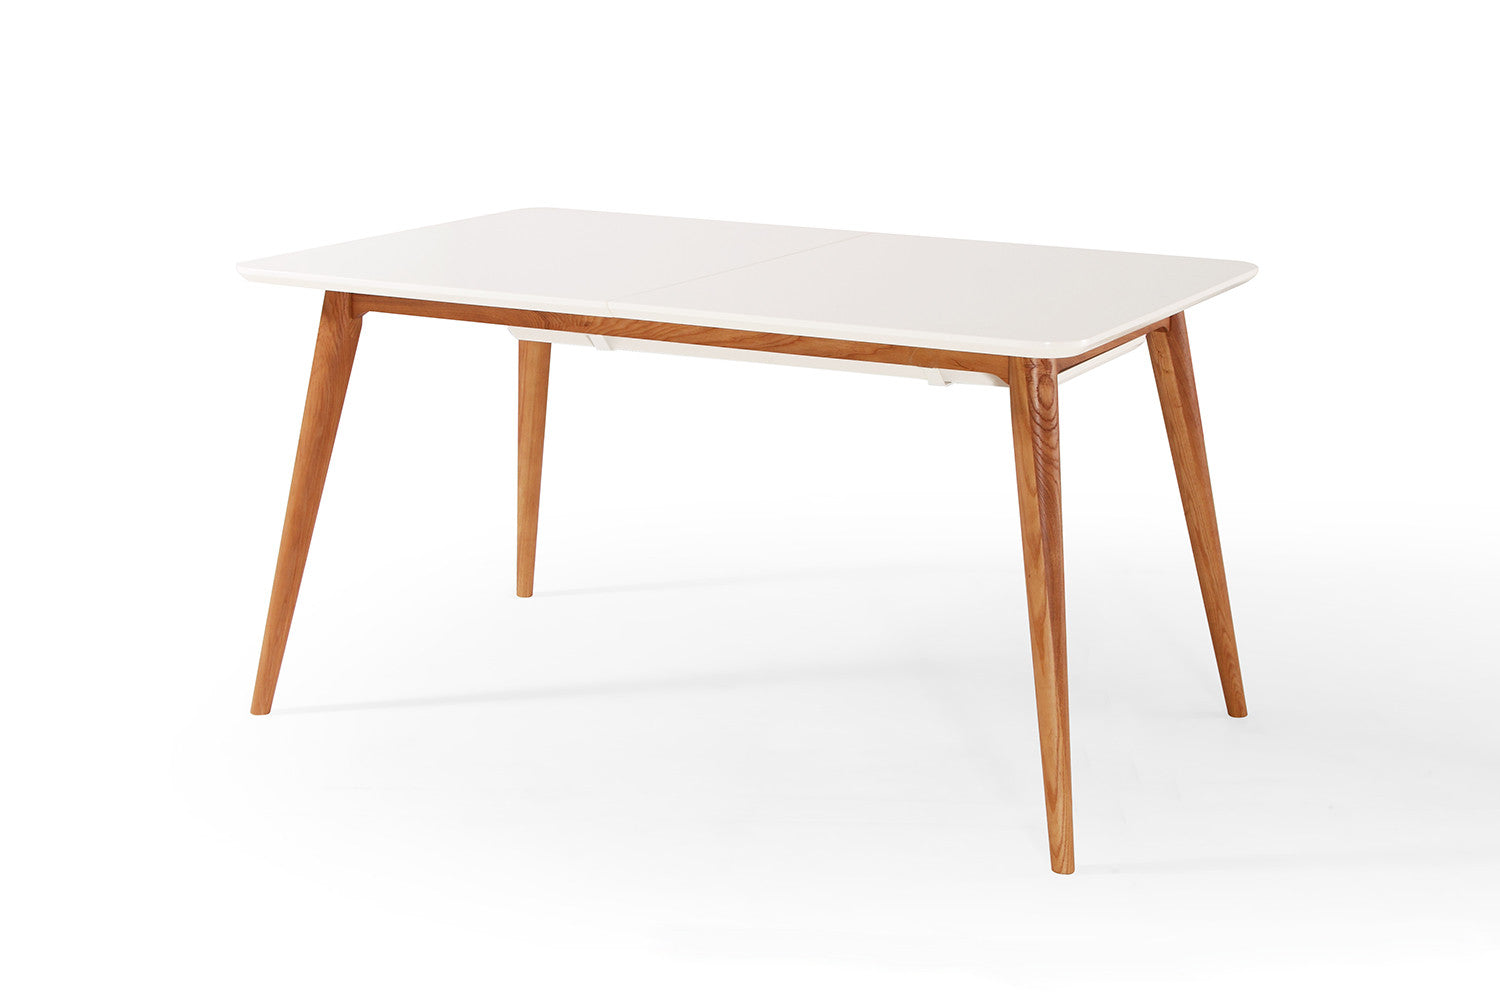 Table de salle manger extensible scandinave wyna dewarens for Table salle manger extensible